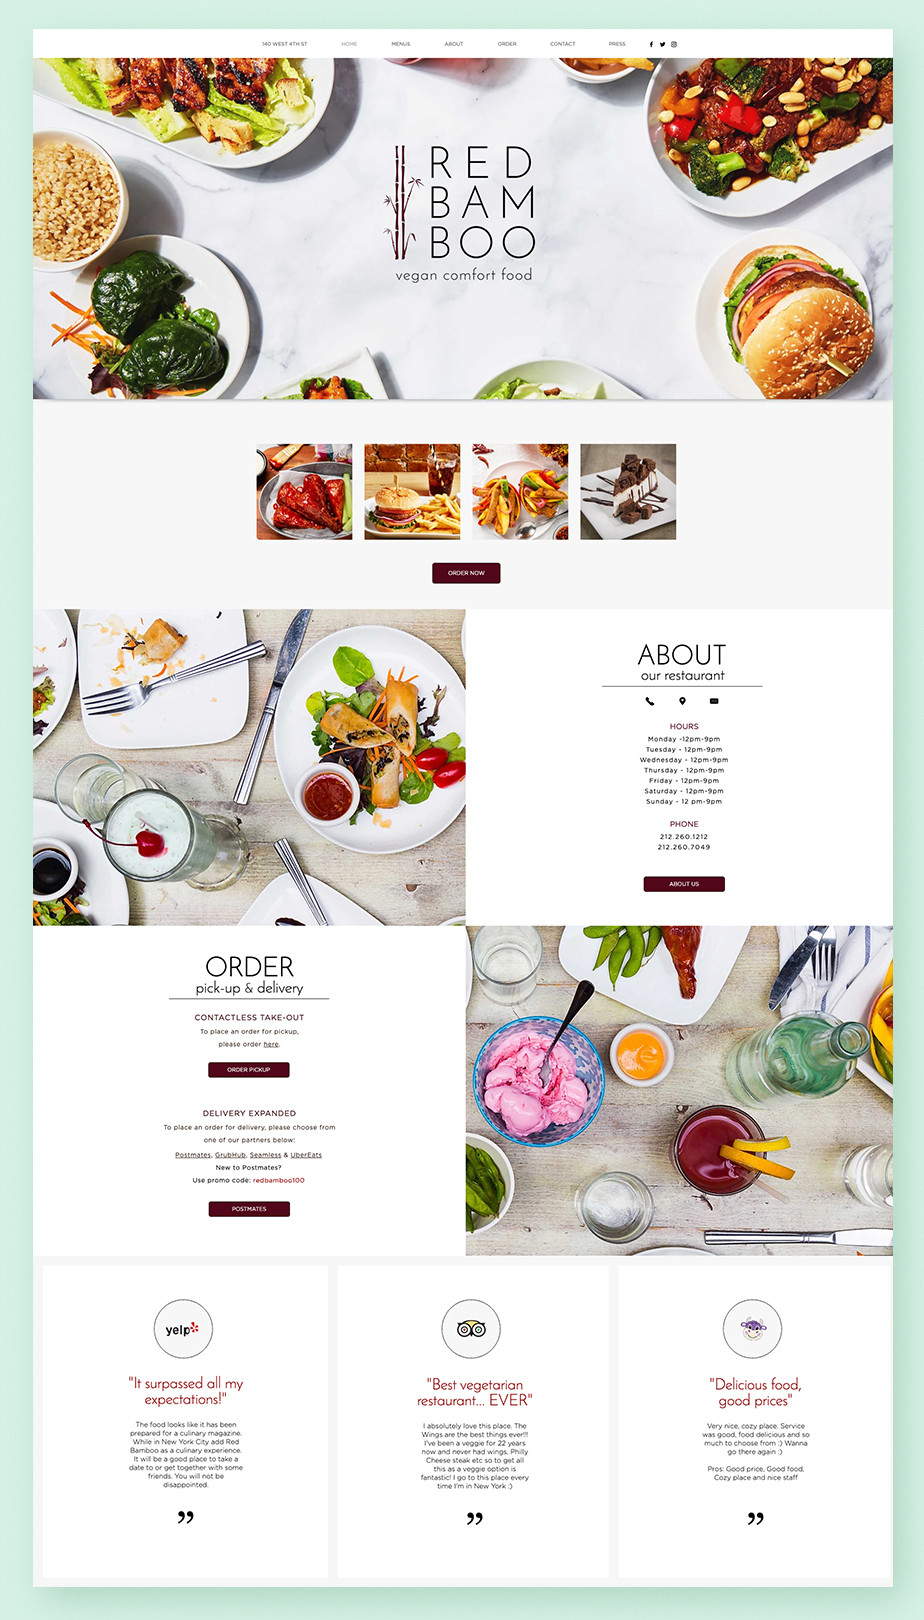 Red Bamboo restaurant website